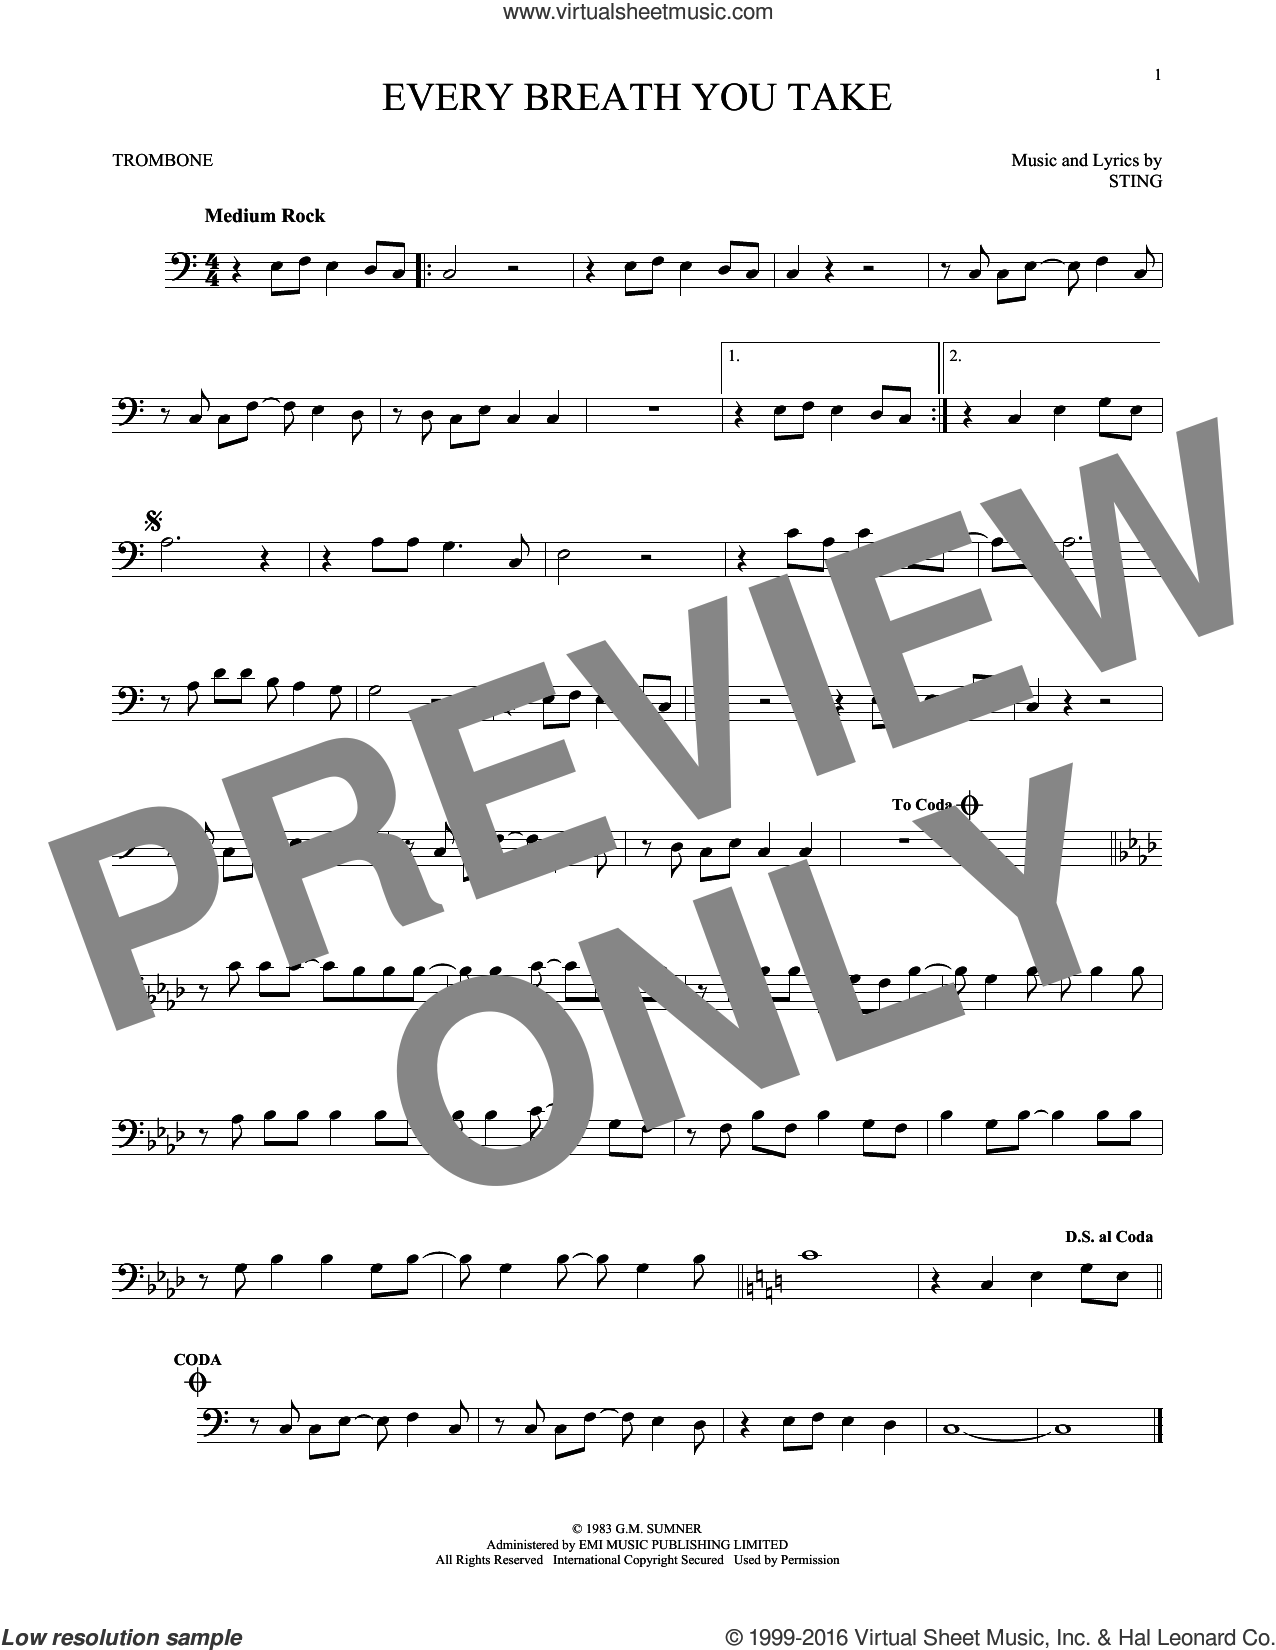 Every Breath You Take sheet music for trombone solo by The Police and Sting, intermediate skill level